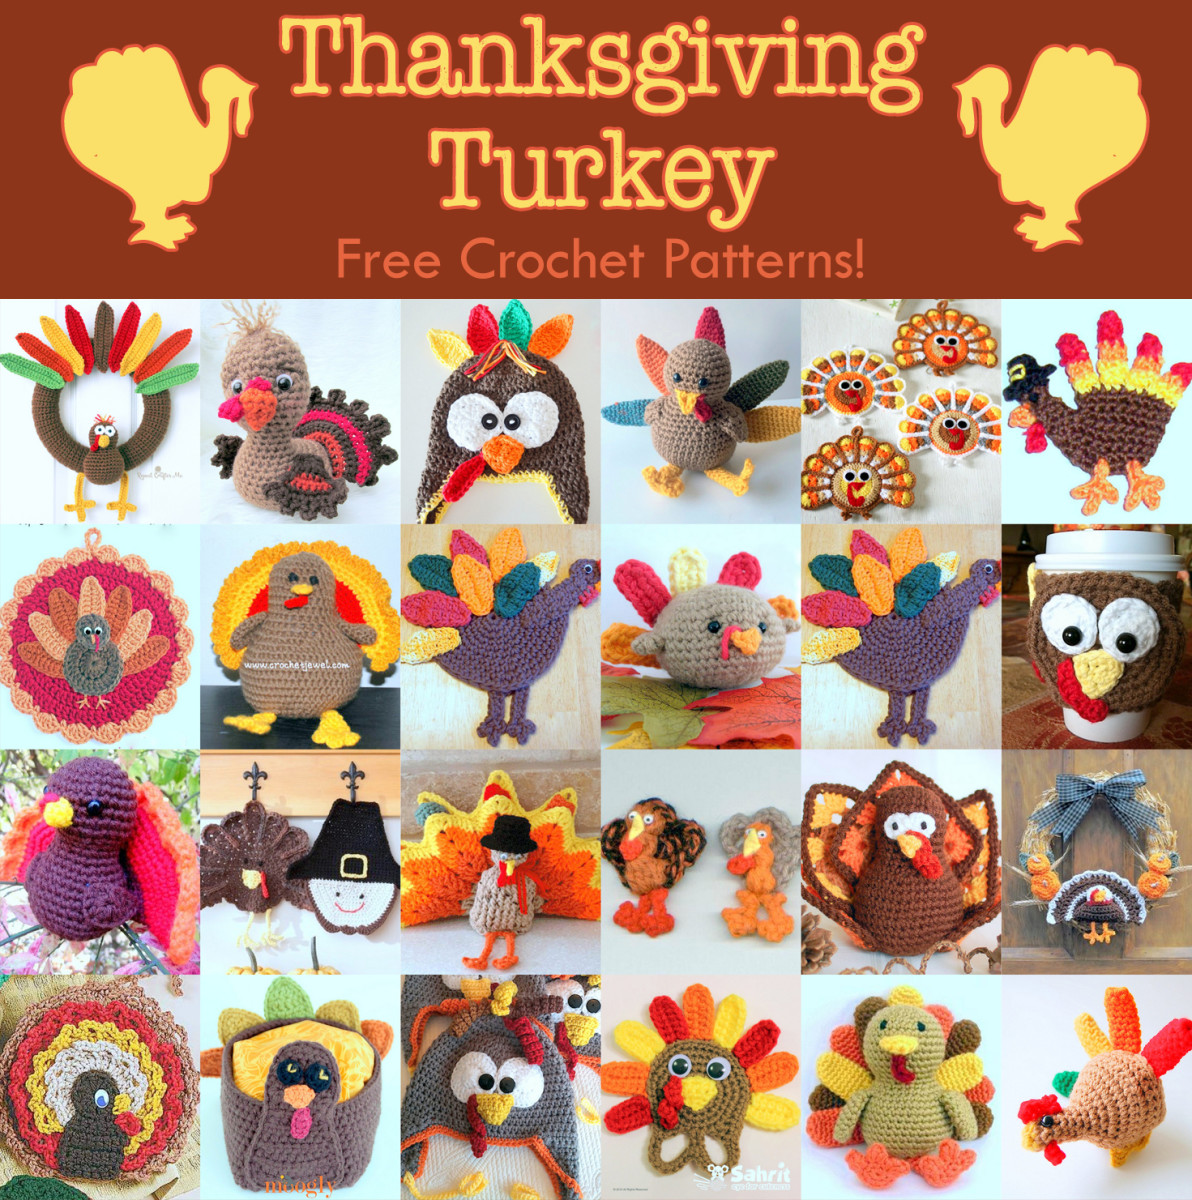 22 Free Thanksgiving Turkey Crochet Patterns